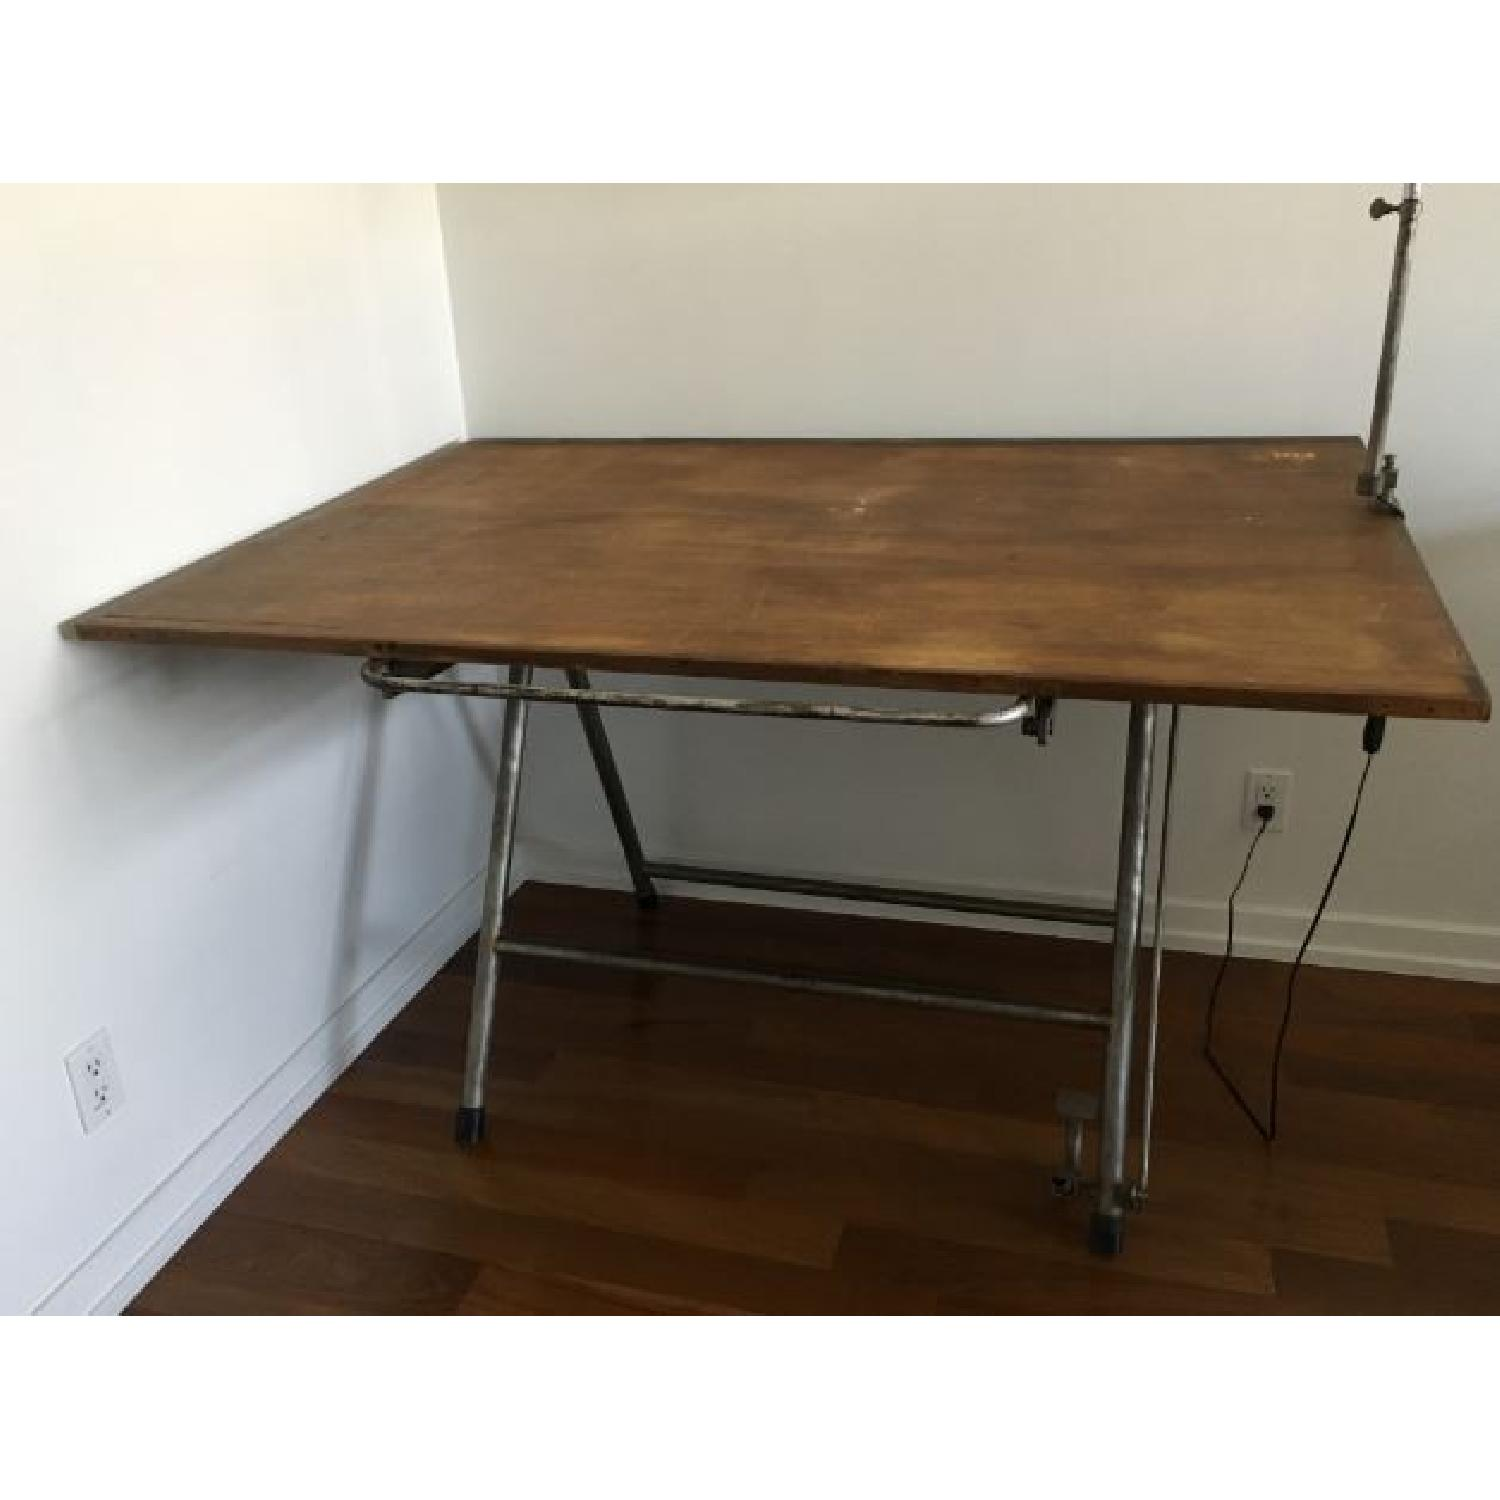 Vintage Industrial Architect Table - image-1